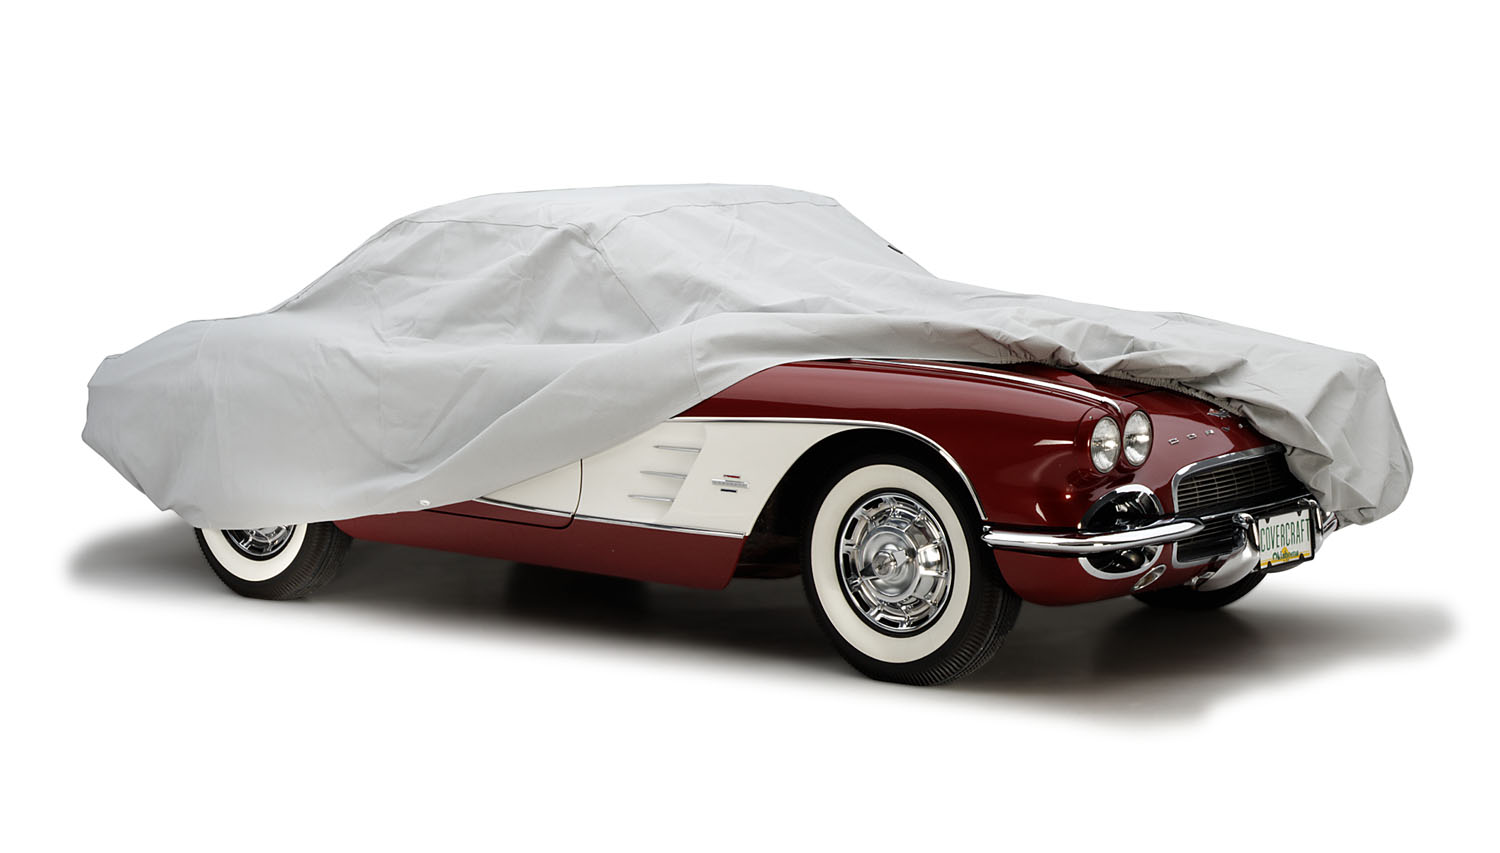 Covercraft Car Cover (CA18TK)